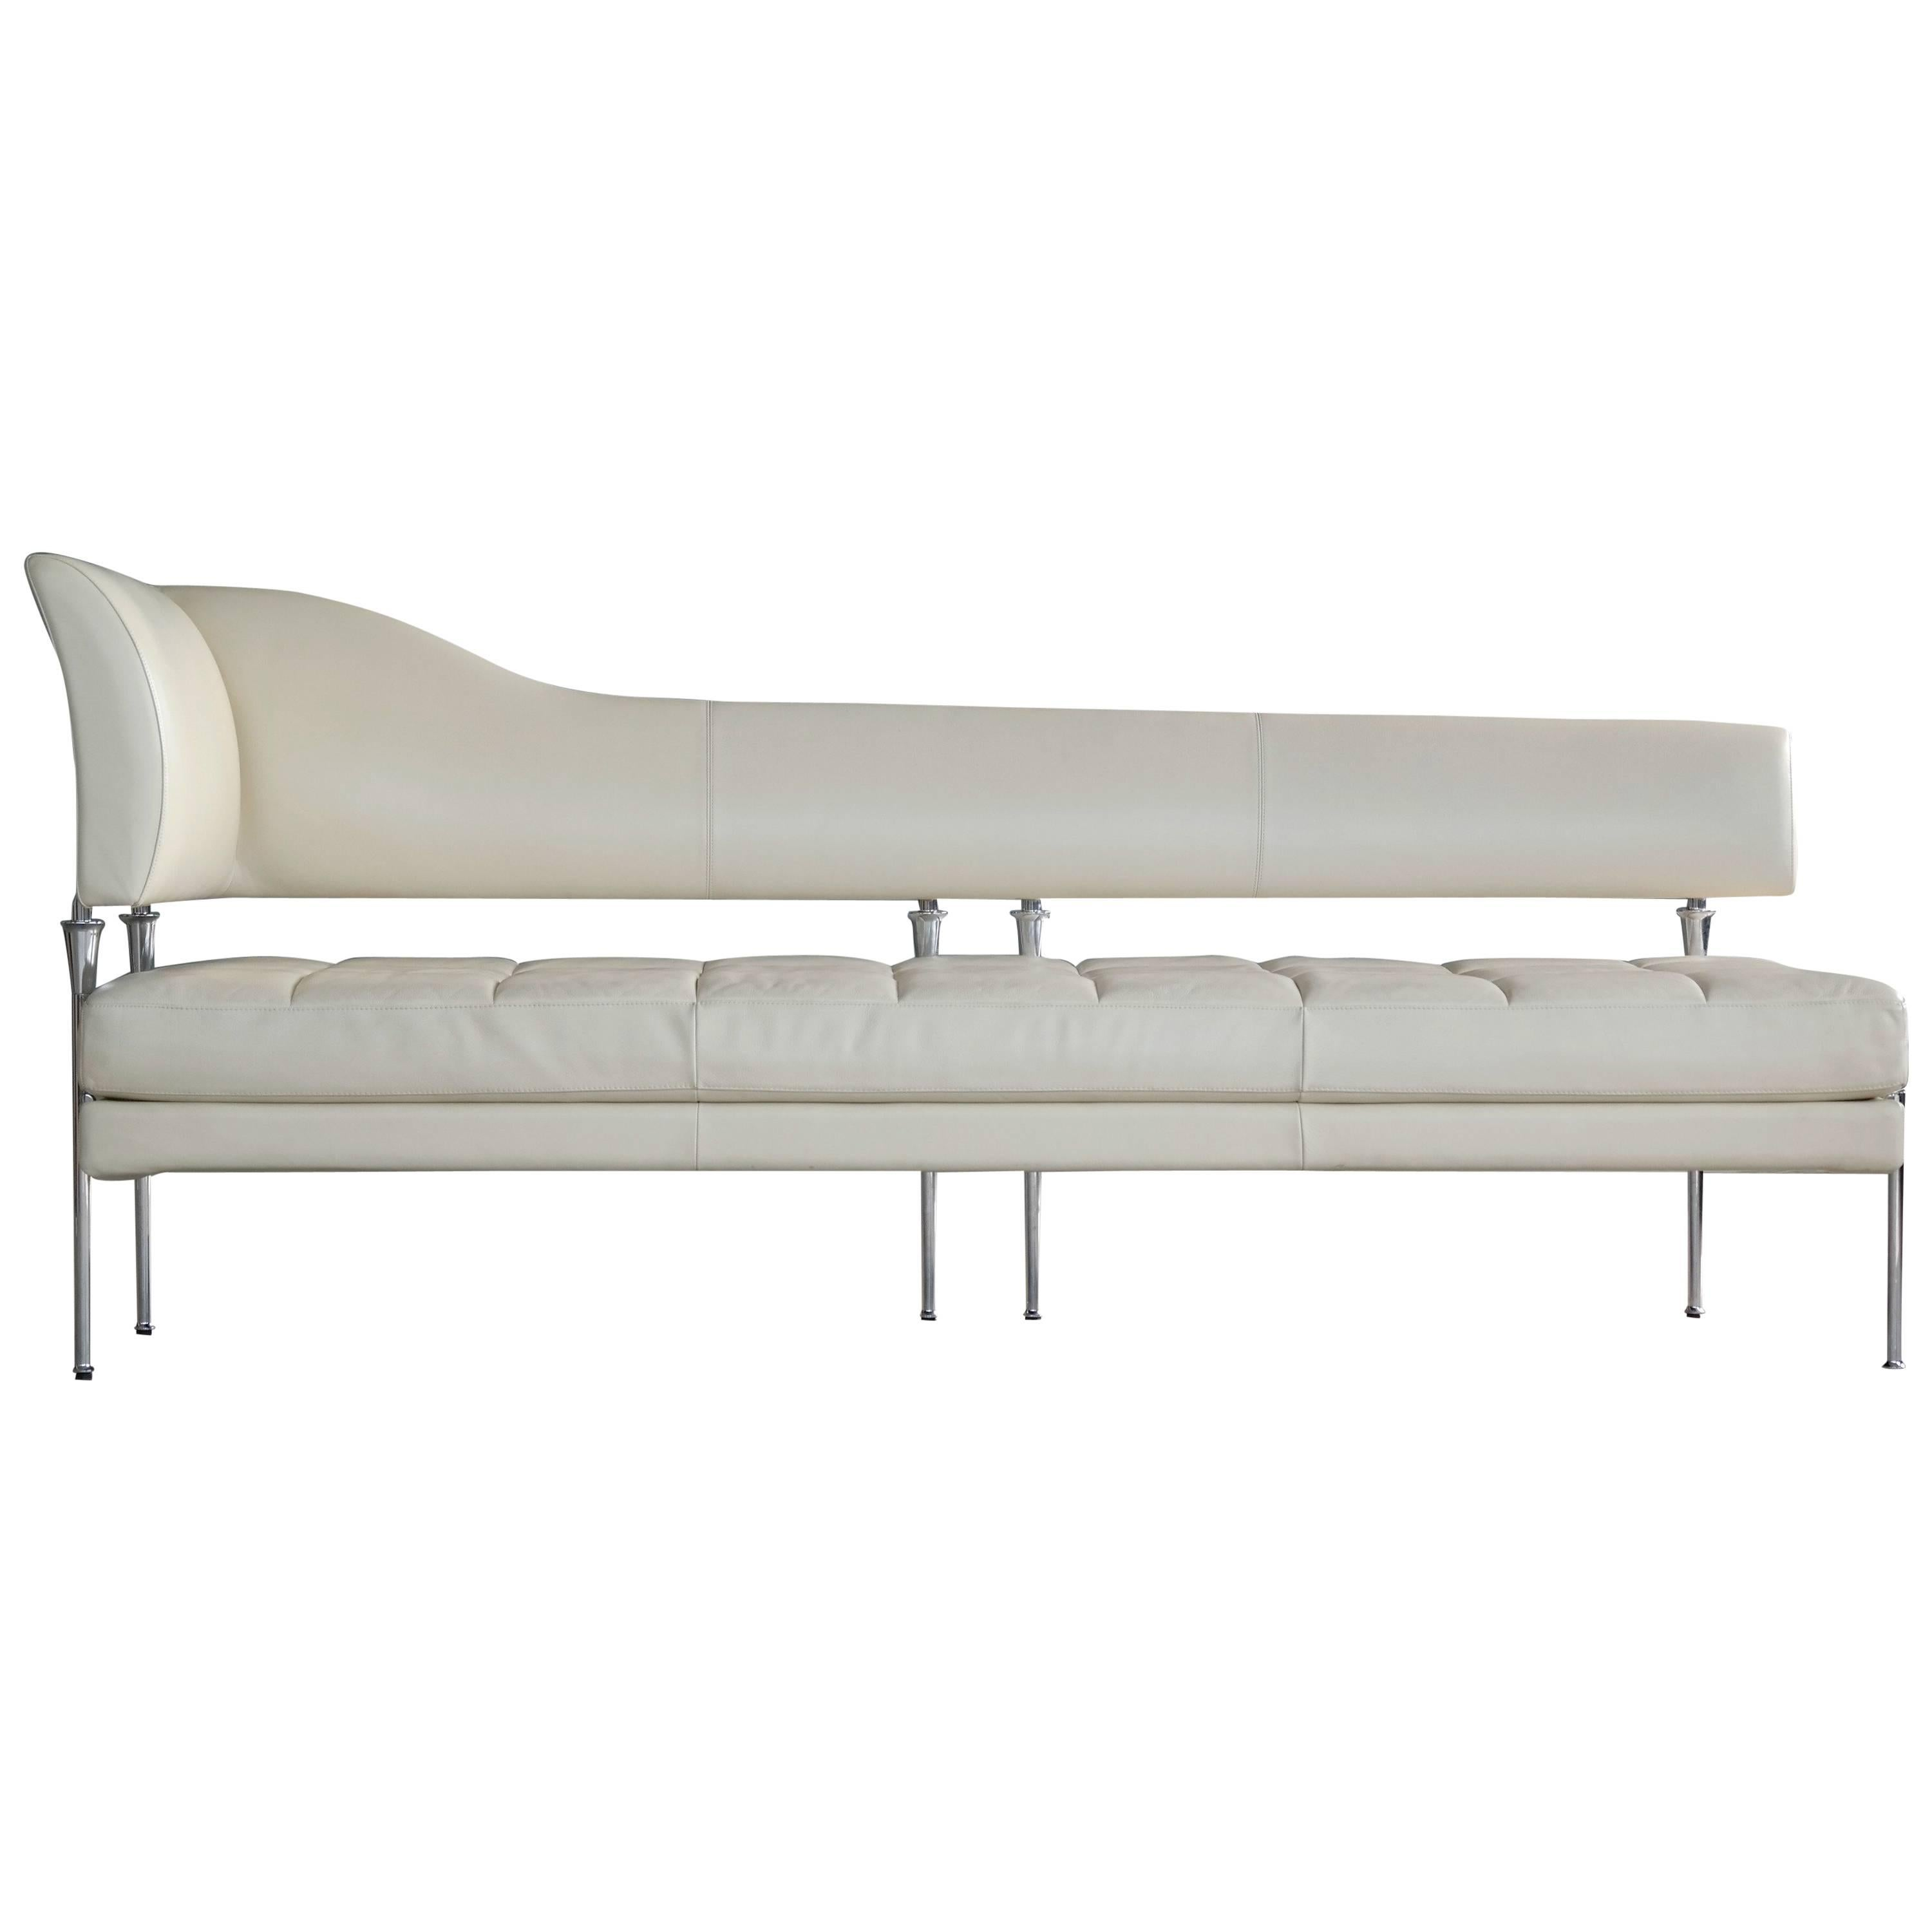 Chaise Drucker Prix Chaise Longue Occasion Good Chaise Drucker Occasion